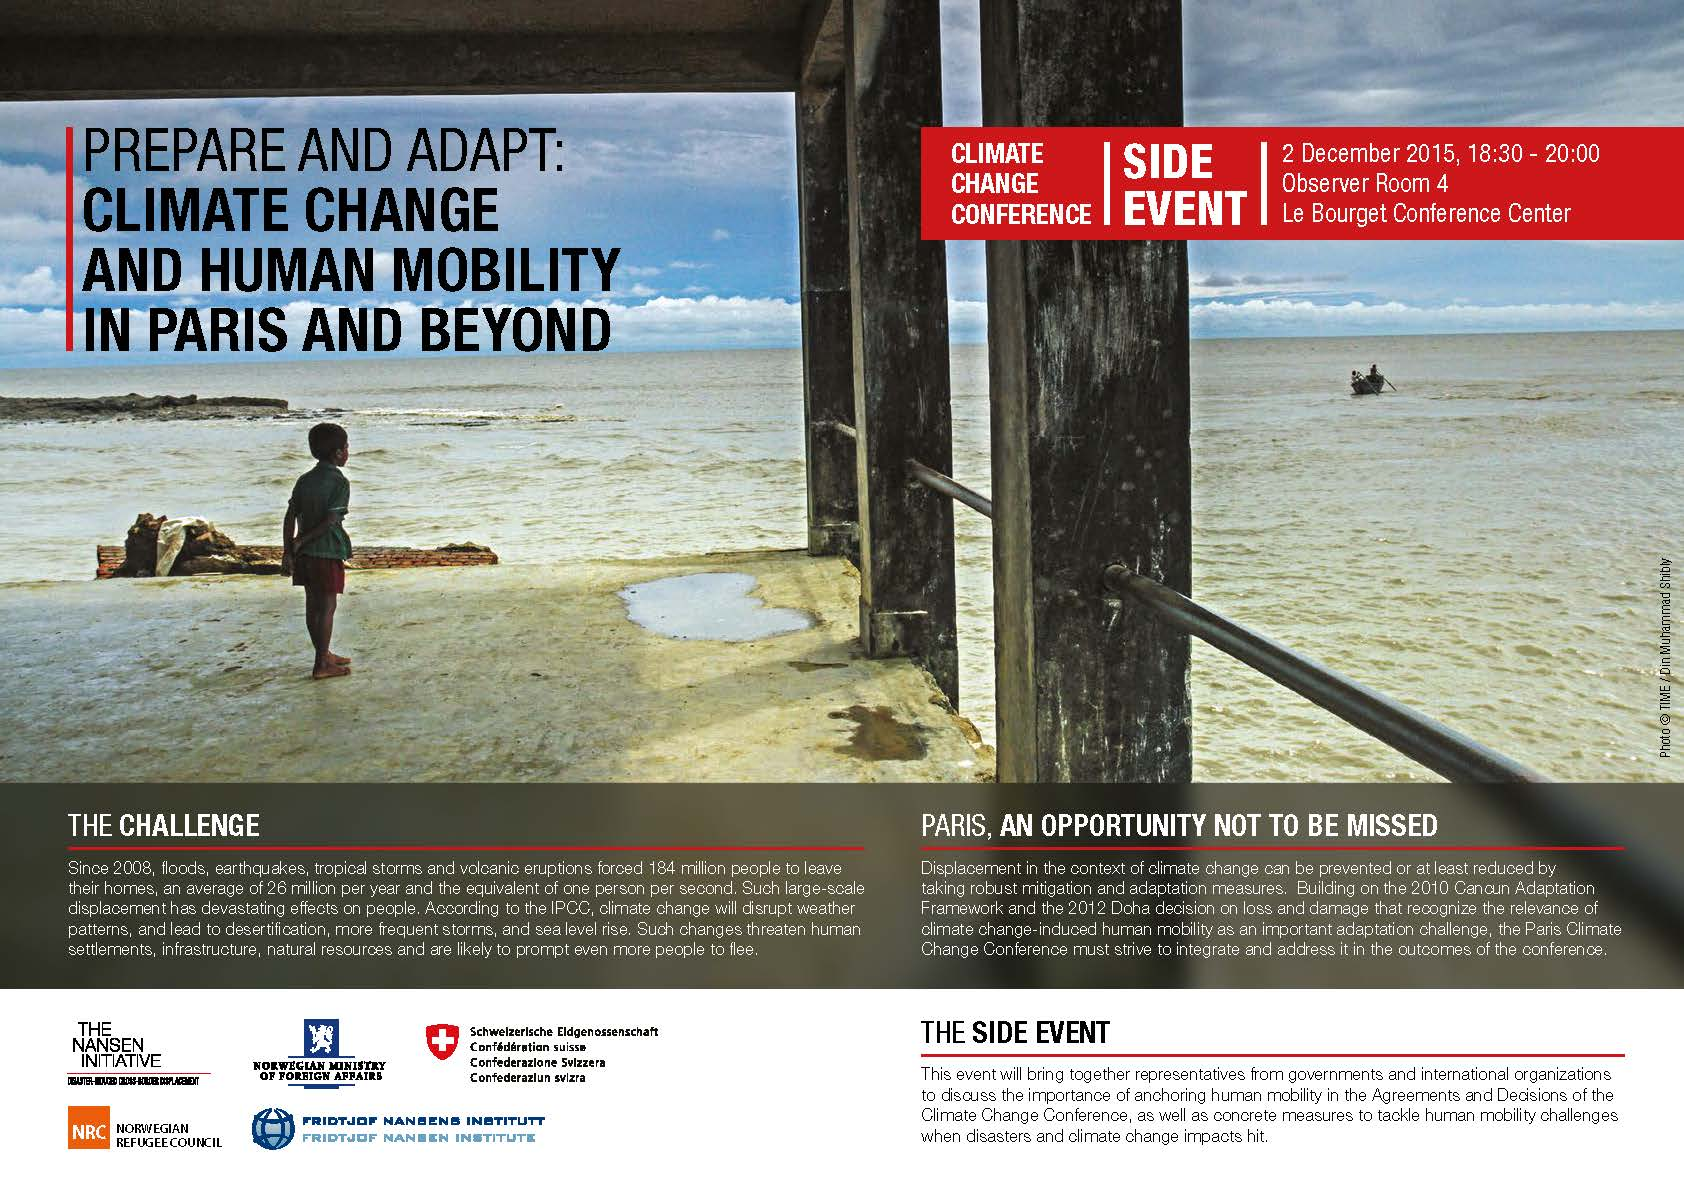 Prepare And Adapt: Climate Change And Human Mobility – In Paris And Beyond